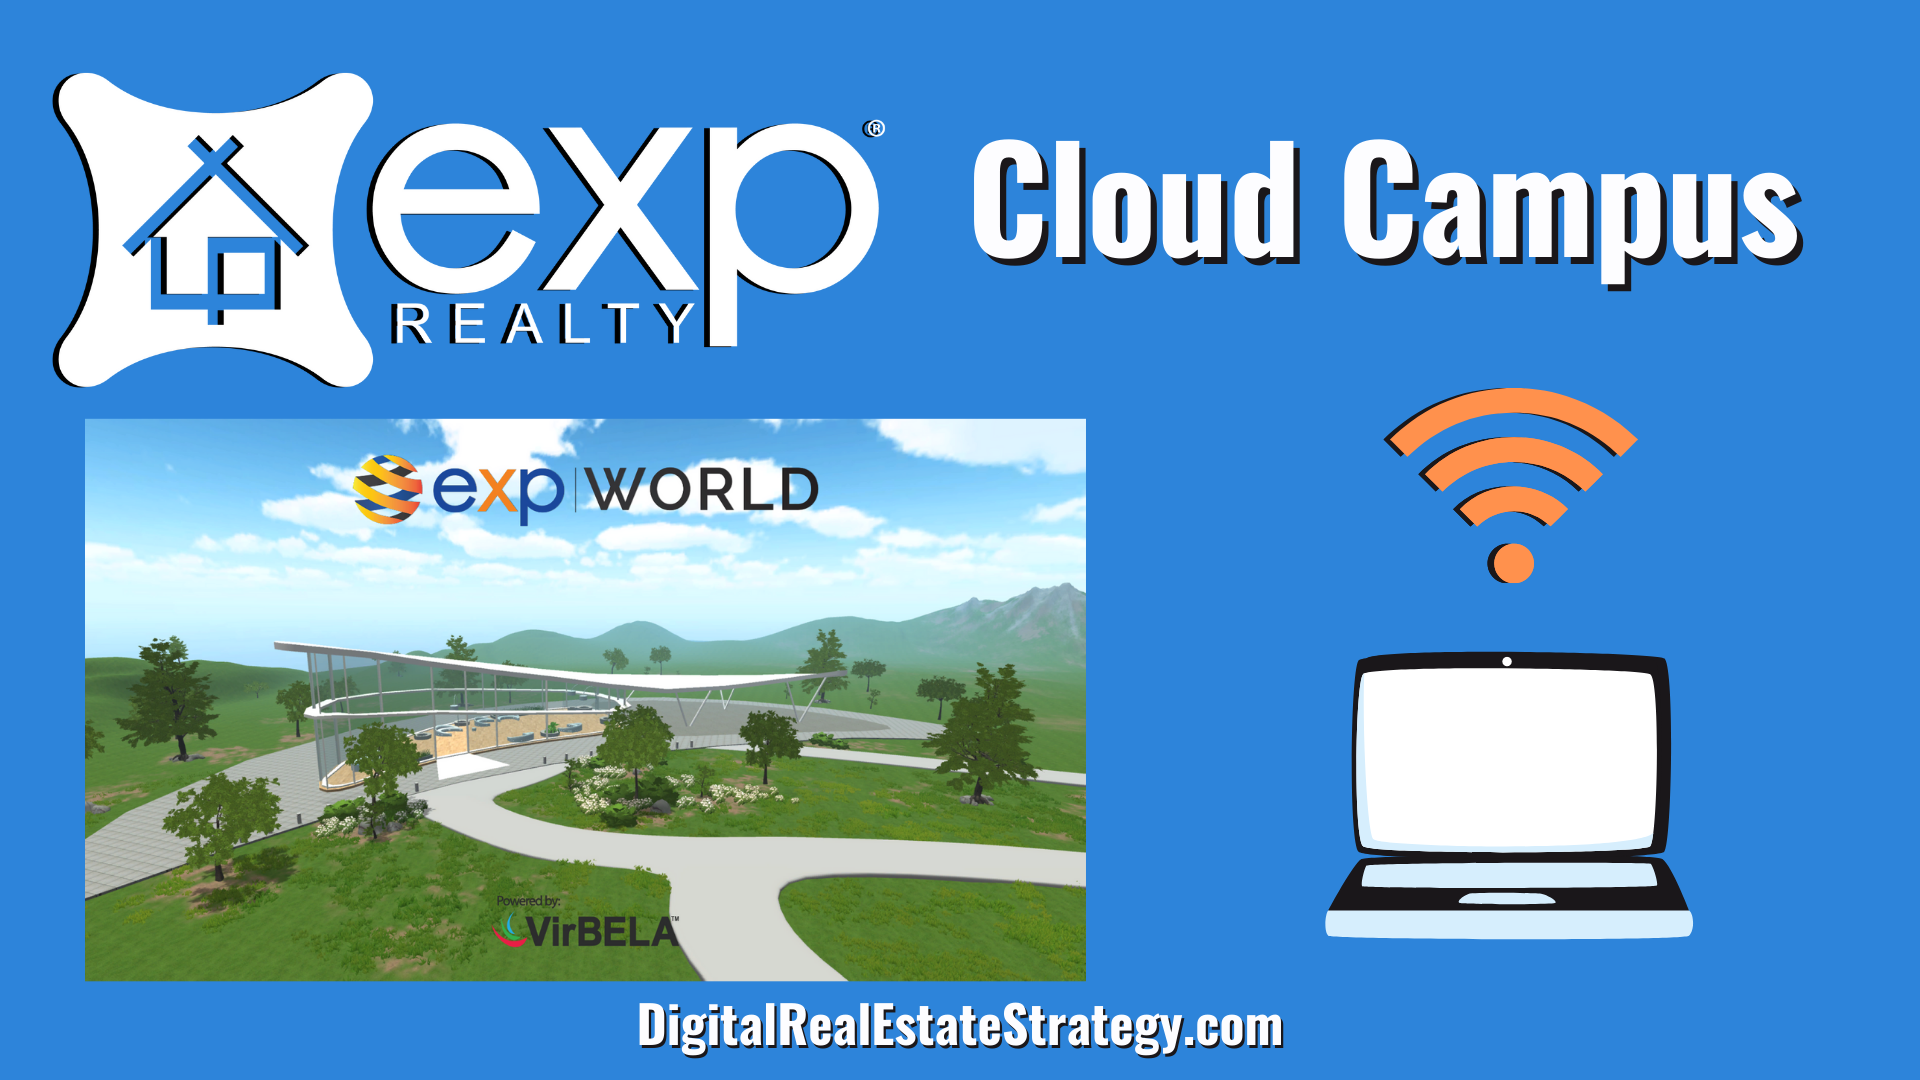 eXp Realty Cloud Campus - eXp Realty Review - The Culture - Jerome Lewis - eXp Realty Philadelphia - PA - Digital Real Estate Strategy